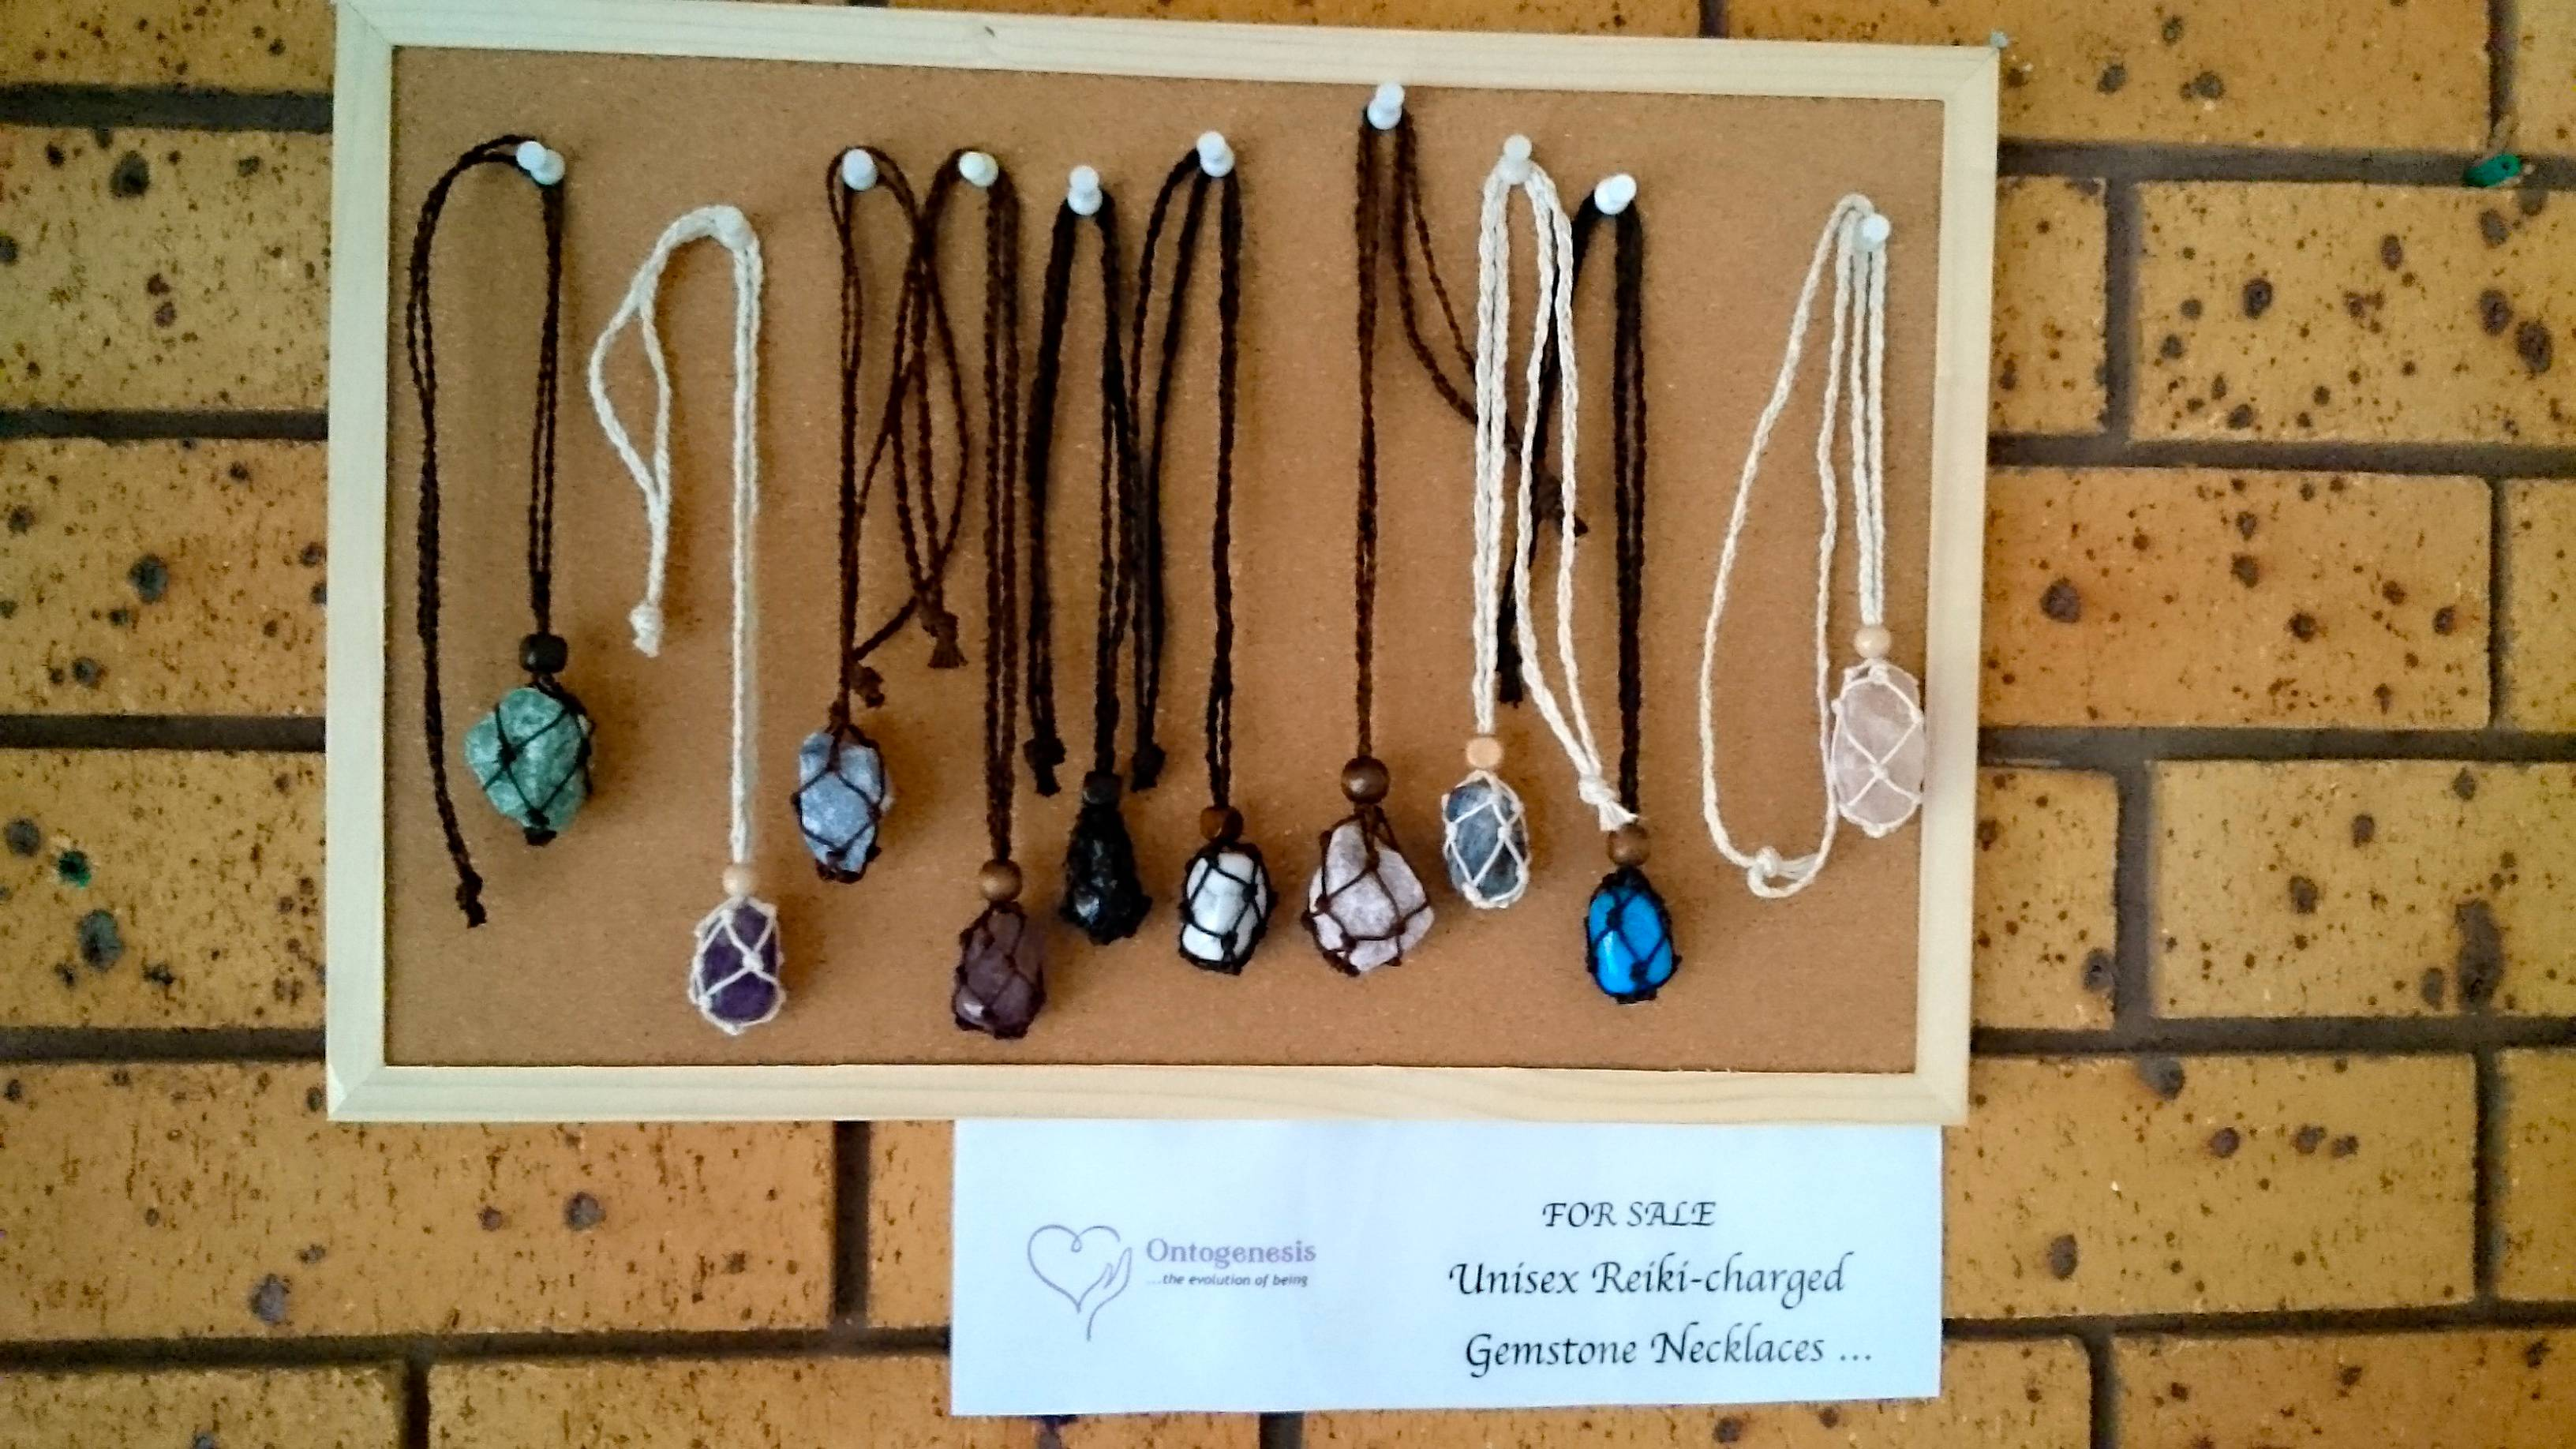 Reiki Charged Gemstone Necklaces ...